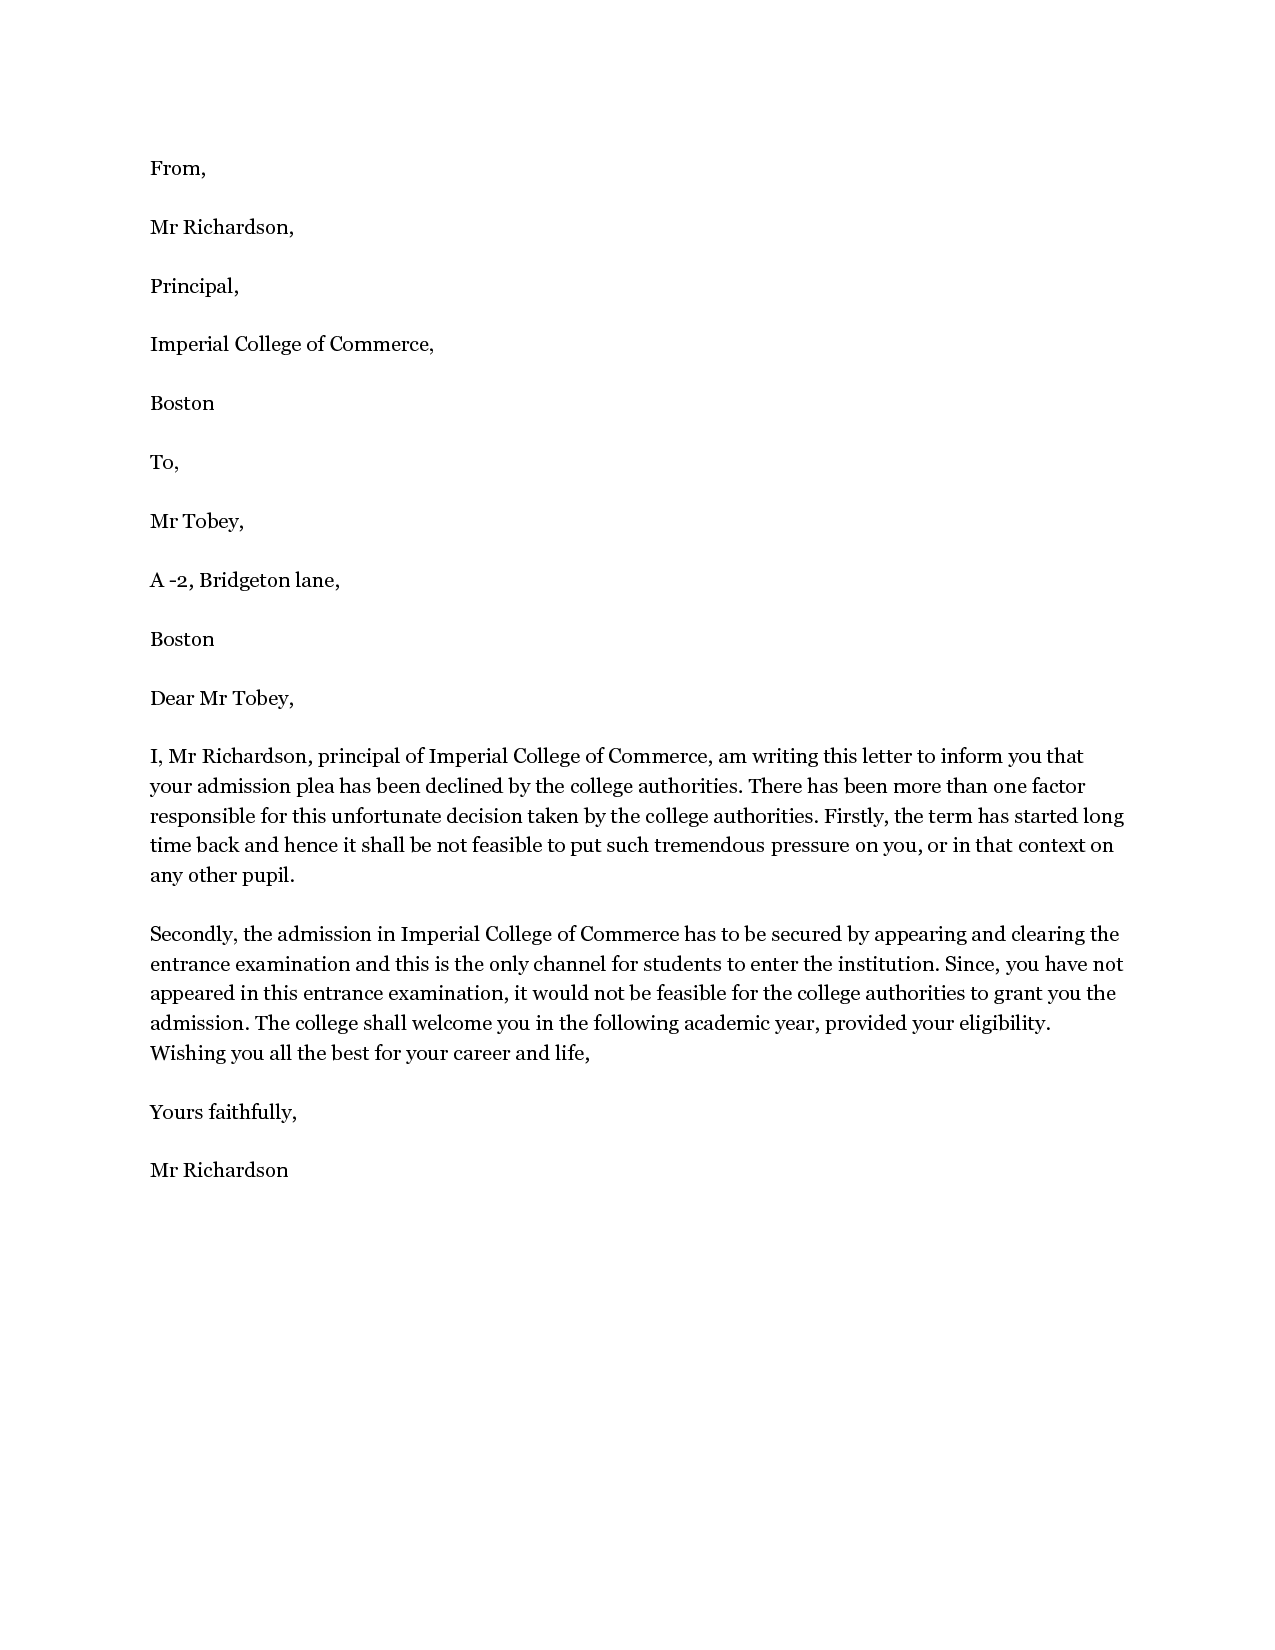 candidate decline letter employers of choice send rejection college decline letter the letter should be brief positive and to the point here is a sample letter for declining college admission